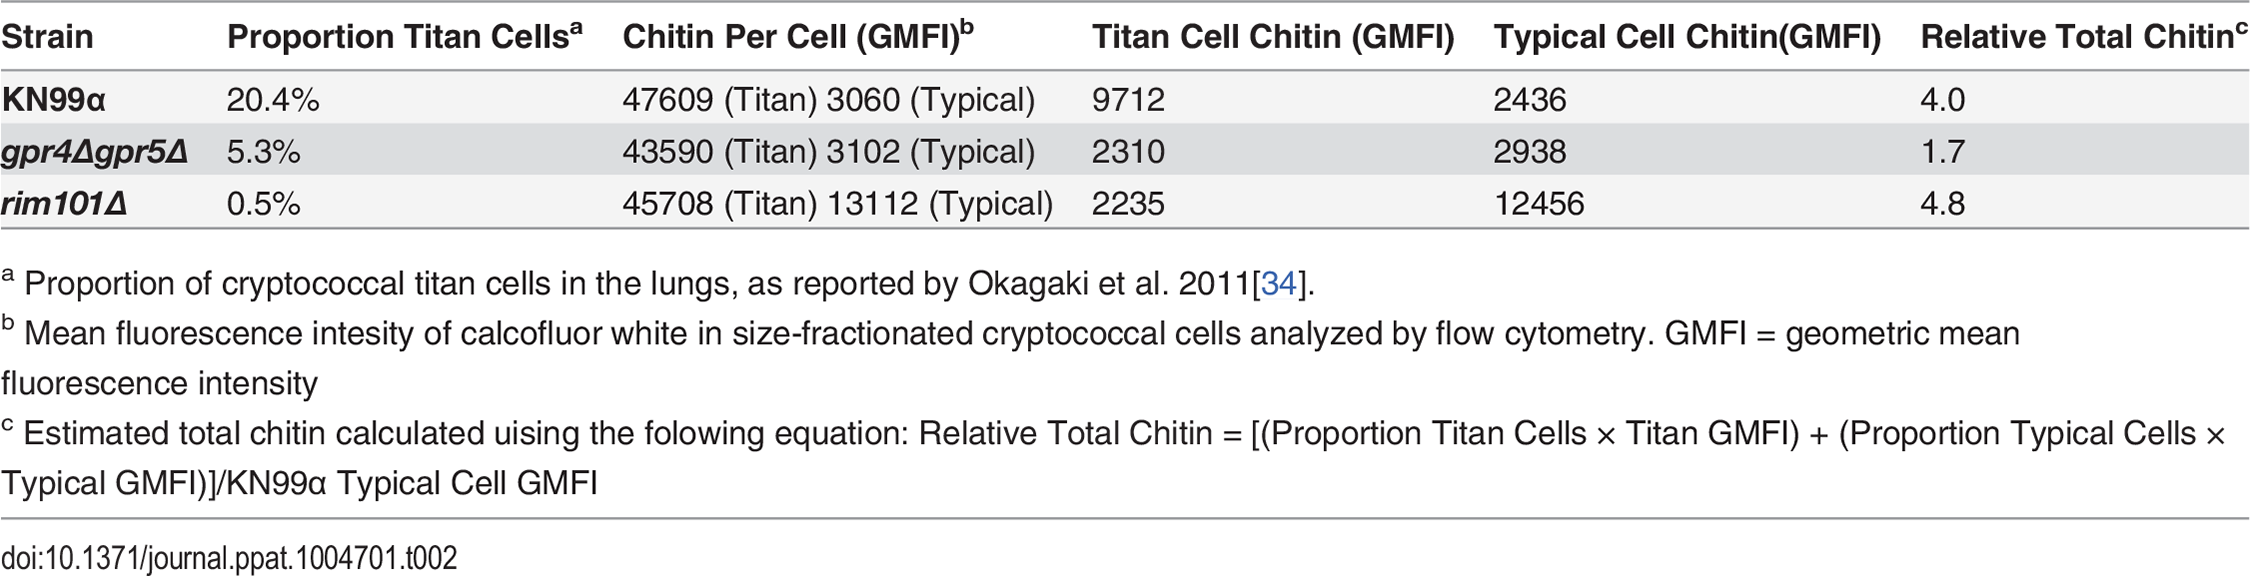 Differences in total chitin due to cell morphology.